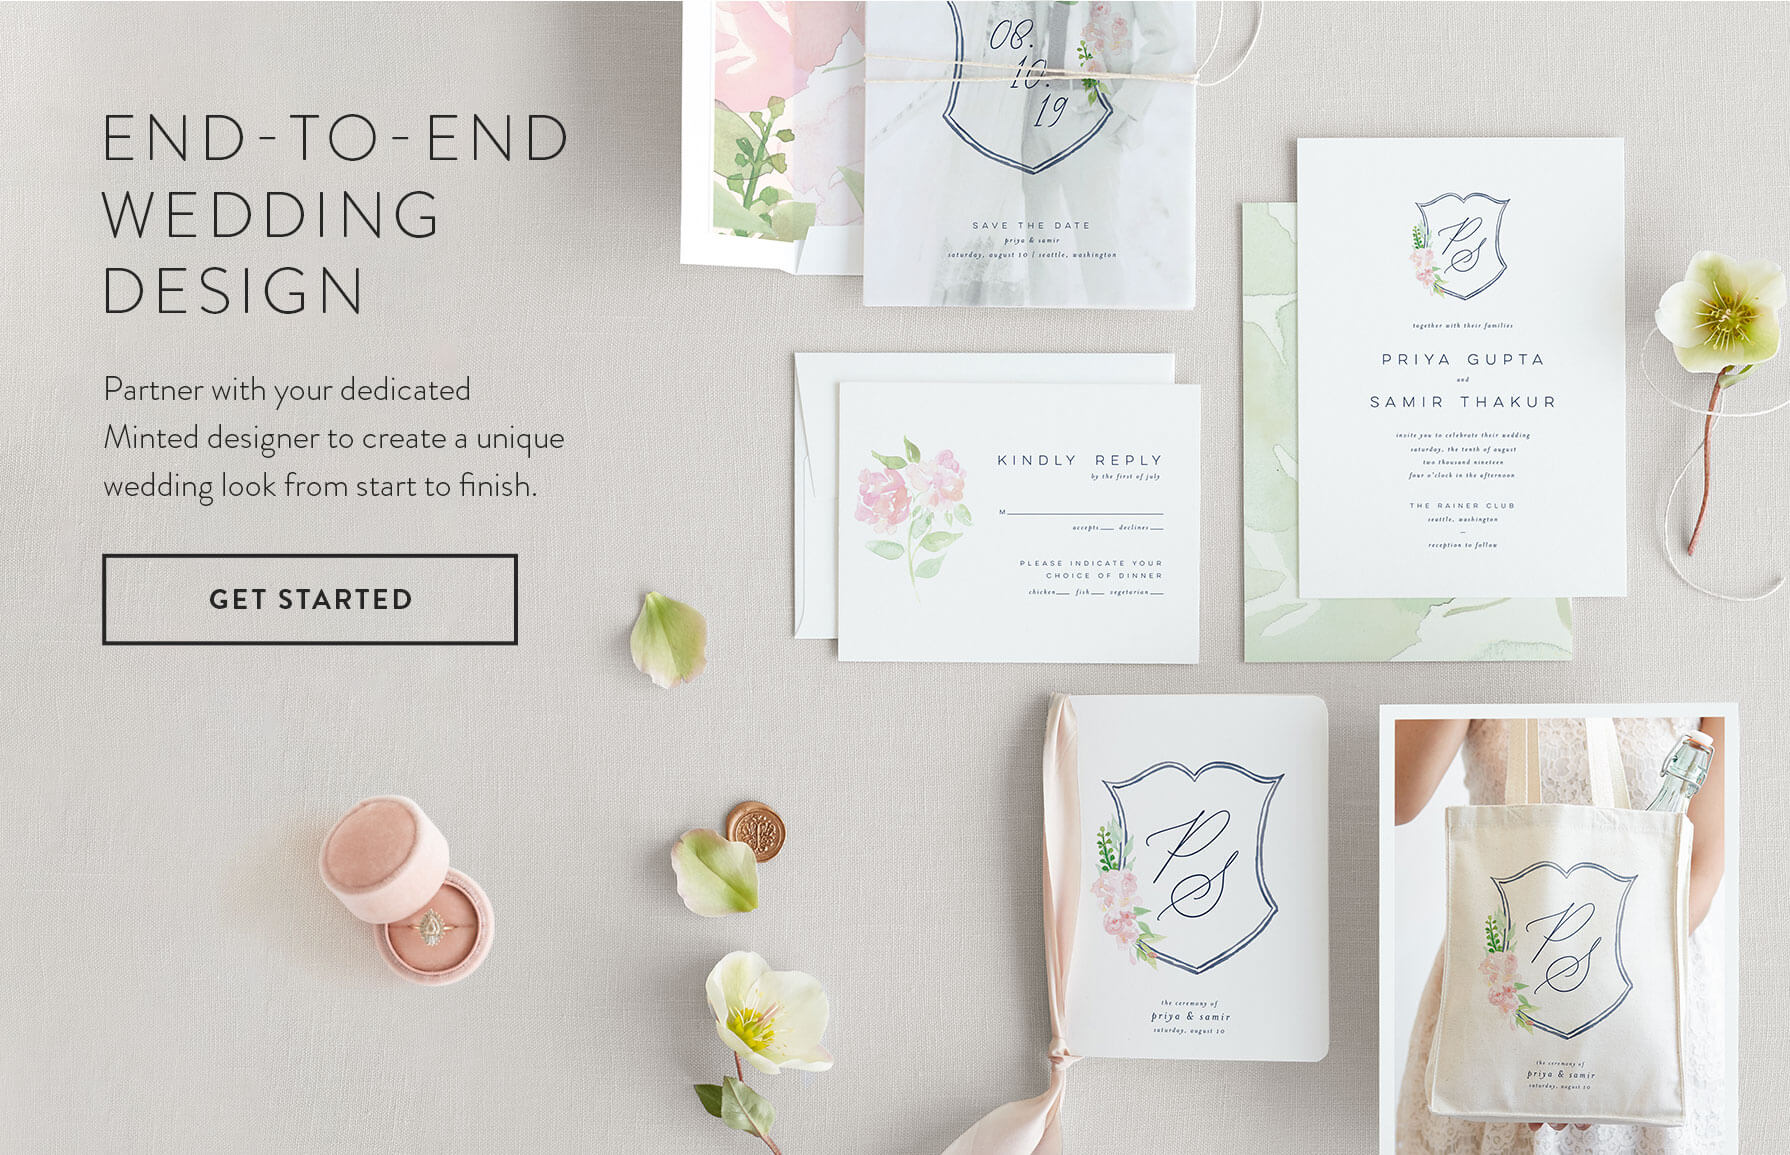 Get Started with End-to-end Wedding Design